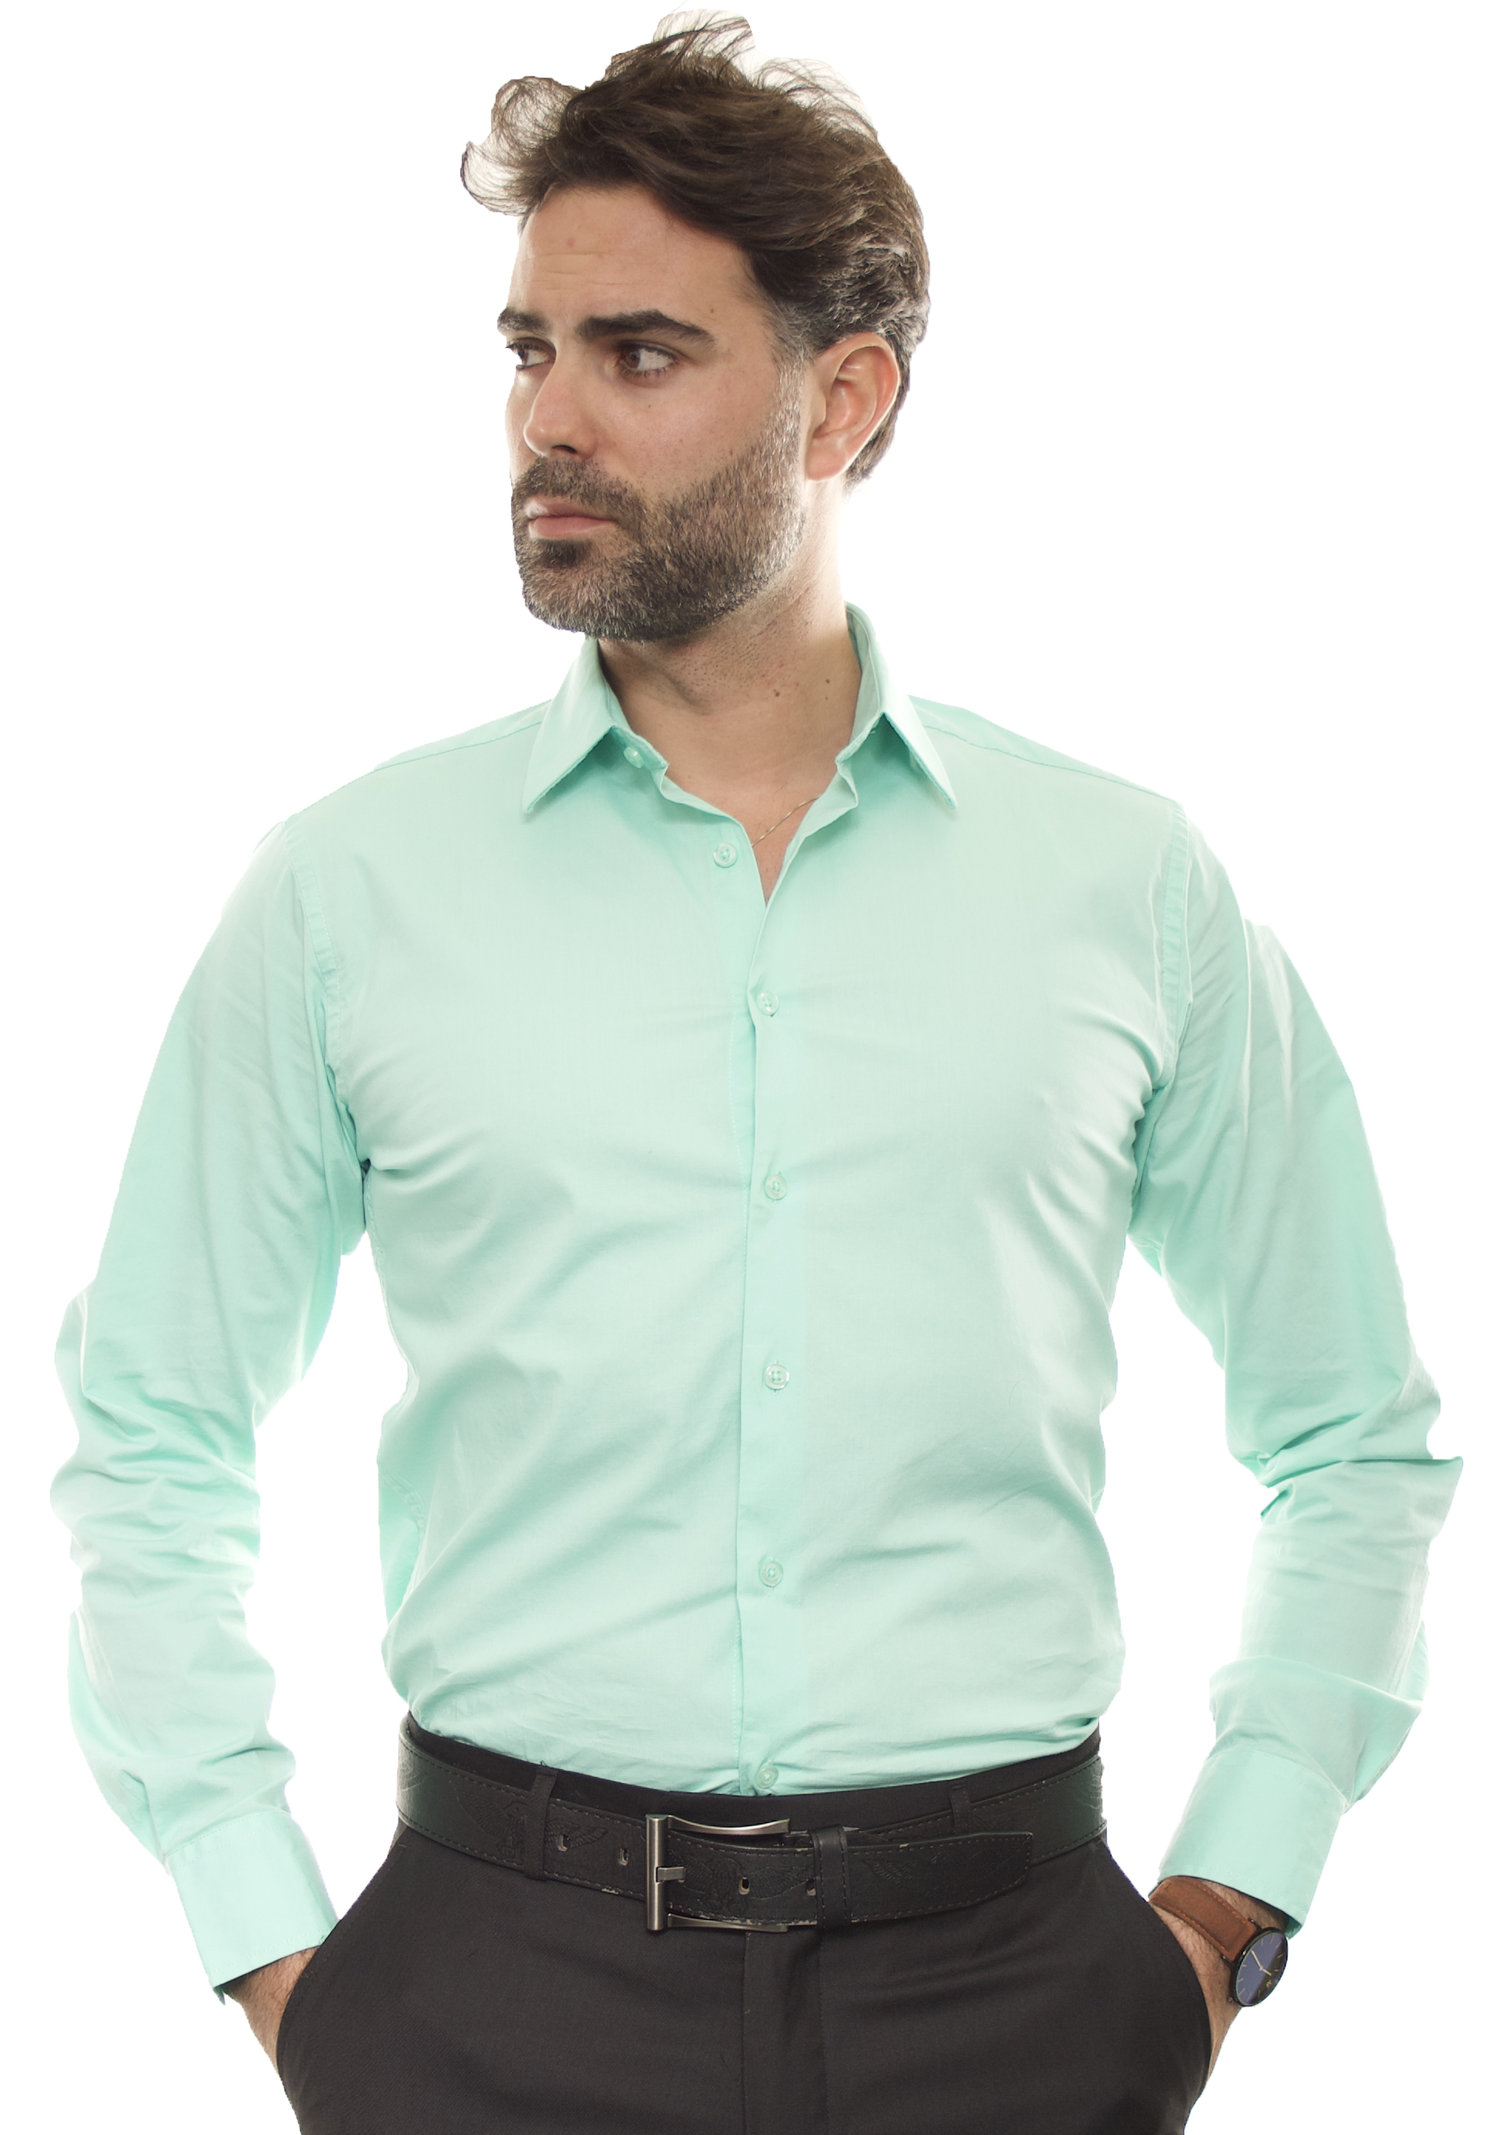 New Fashion Dress Shirt Mint